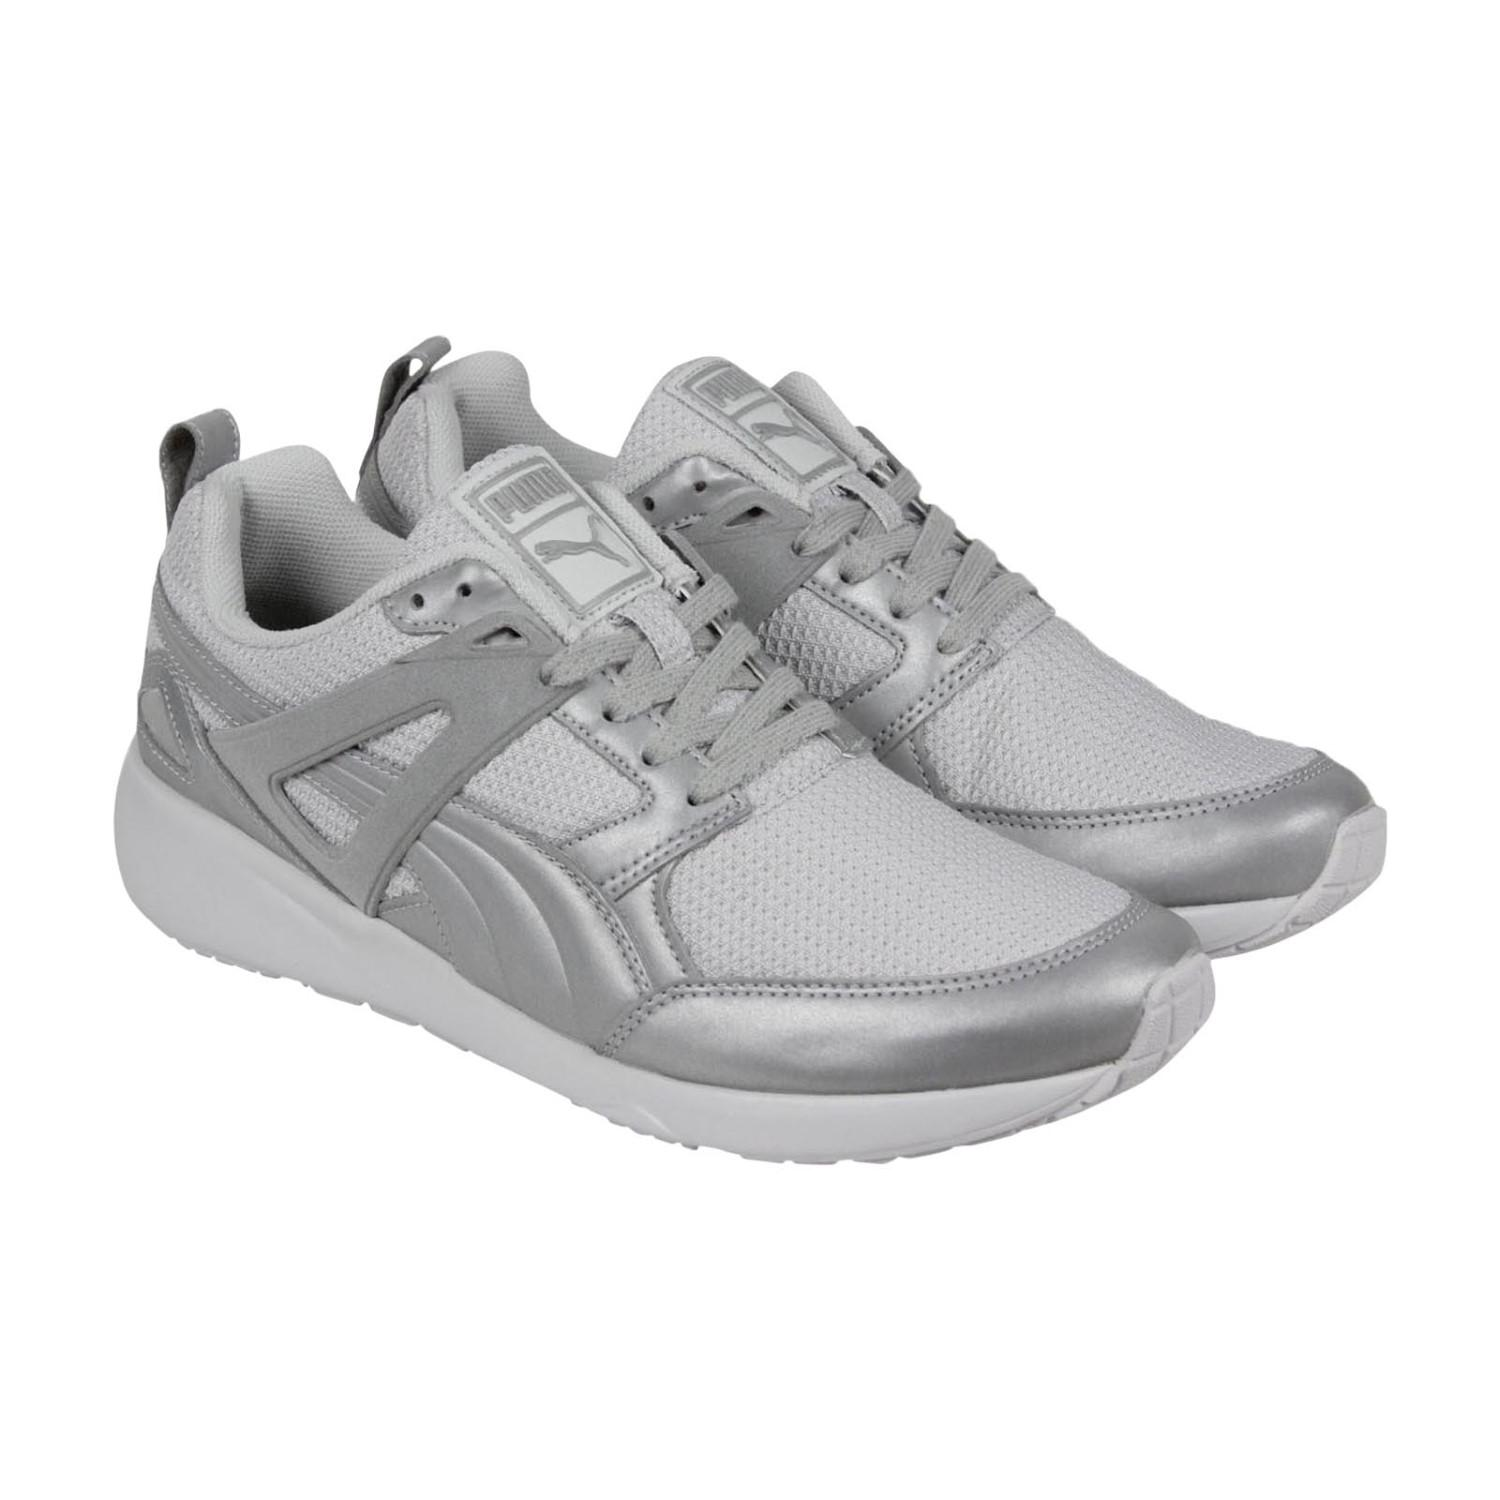 PUMA. Men's Gray Arial Reflective Silver Metallic Lace Up Sneakers